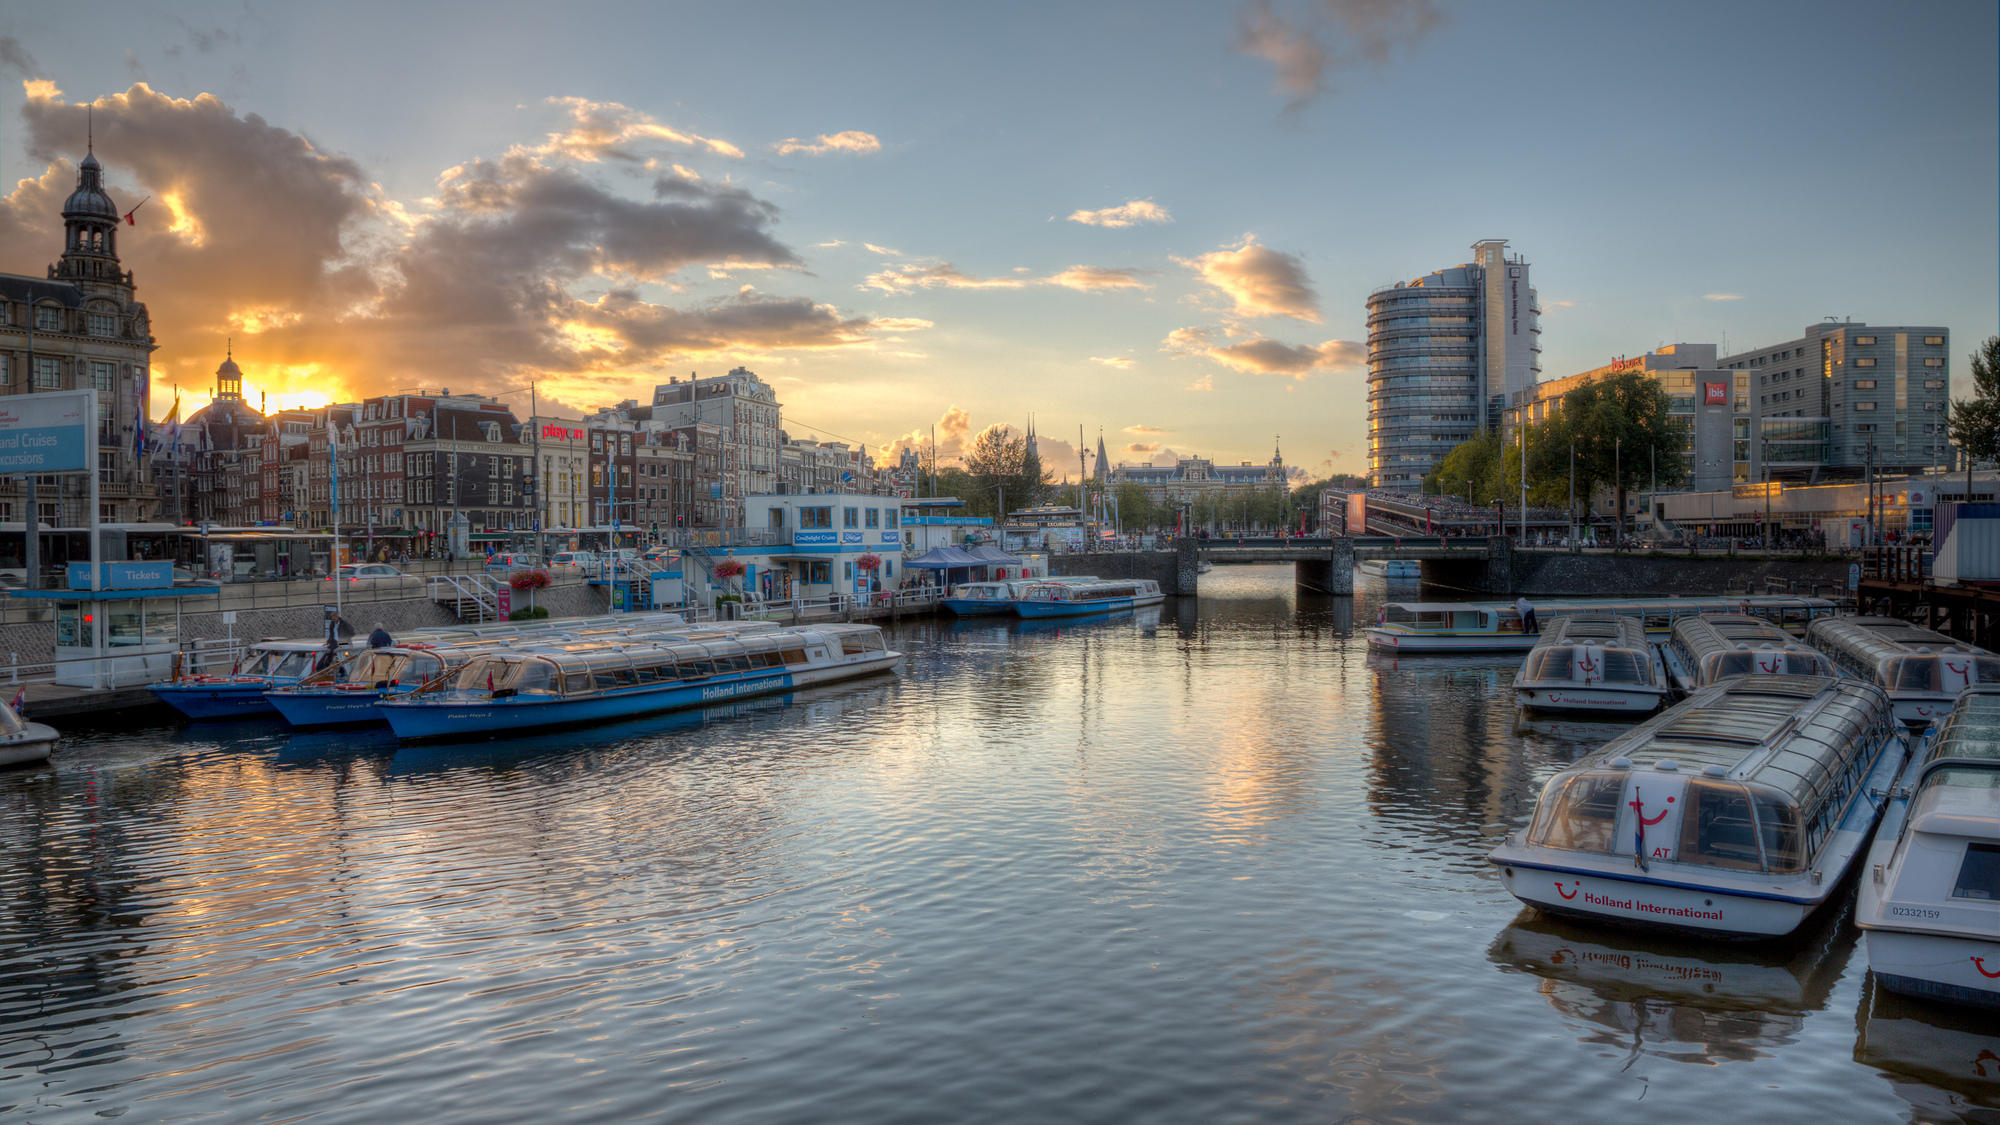 Beautiful photo of a nice sunset shot at a channel near Amsterdam Centraal